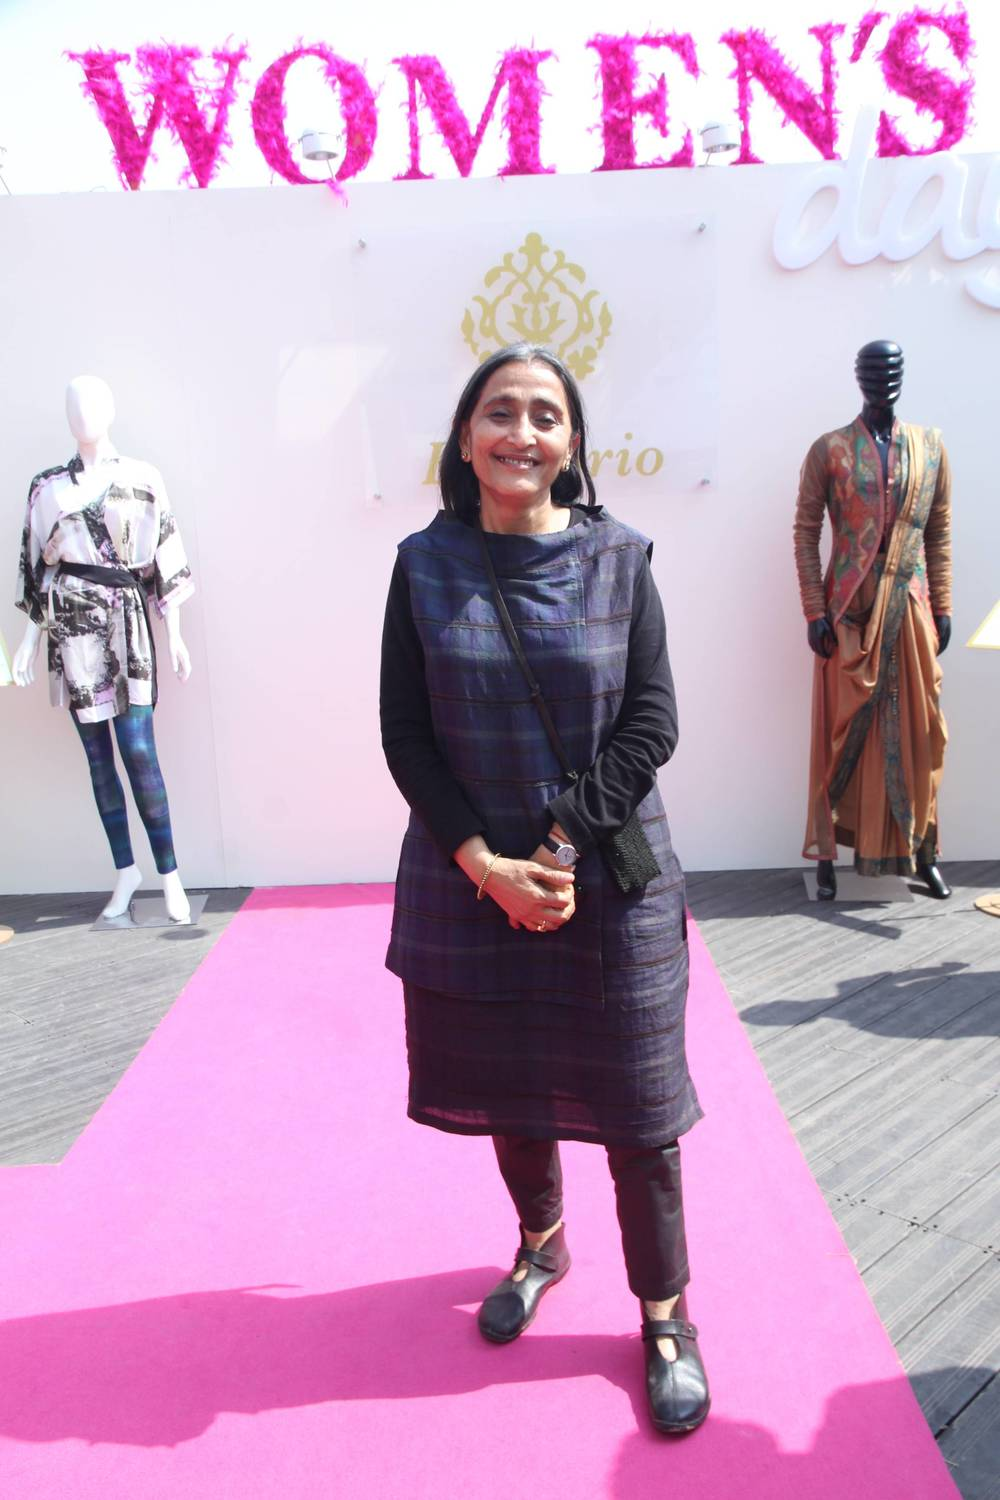 DLF Emporio - Women's Day - Neeru Kumar at the event.jpg